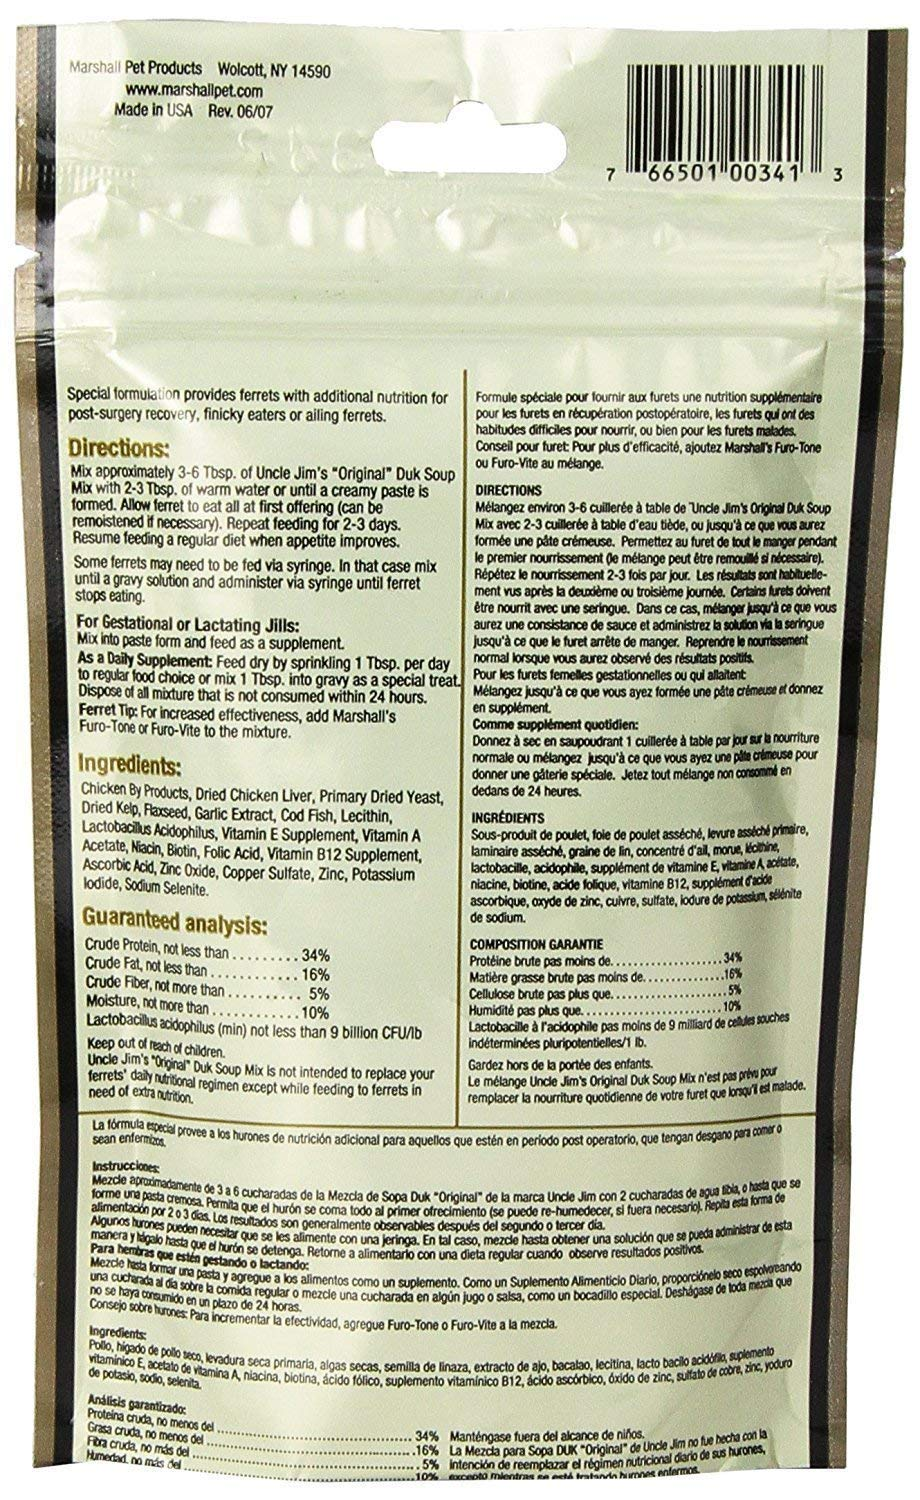 Pack of 12 - Uncle Jim's Original DUK Soup Mix by Marshall - Ferret Food Supplement and Dietary Aid - RandStar Mini Comb by Marshall Pet Products (Image #3)